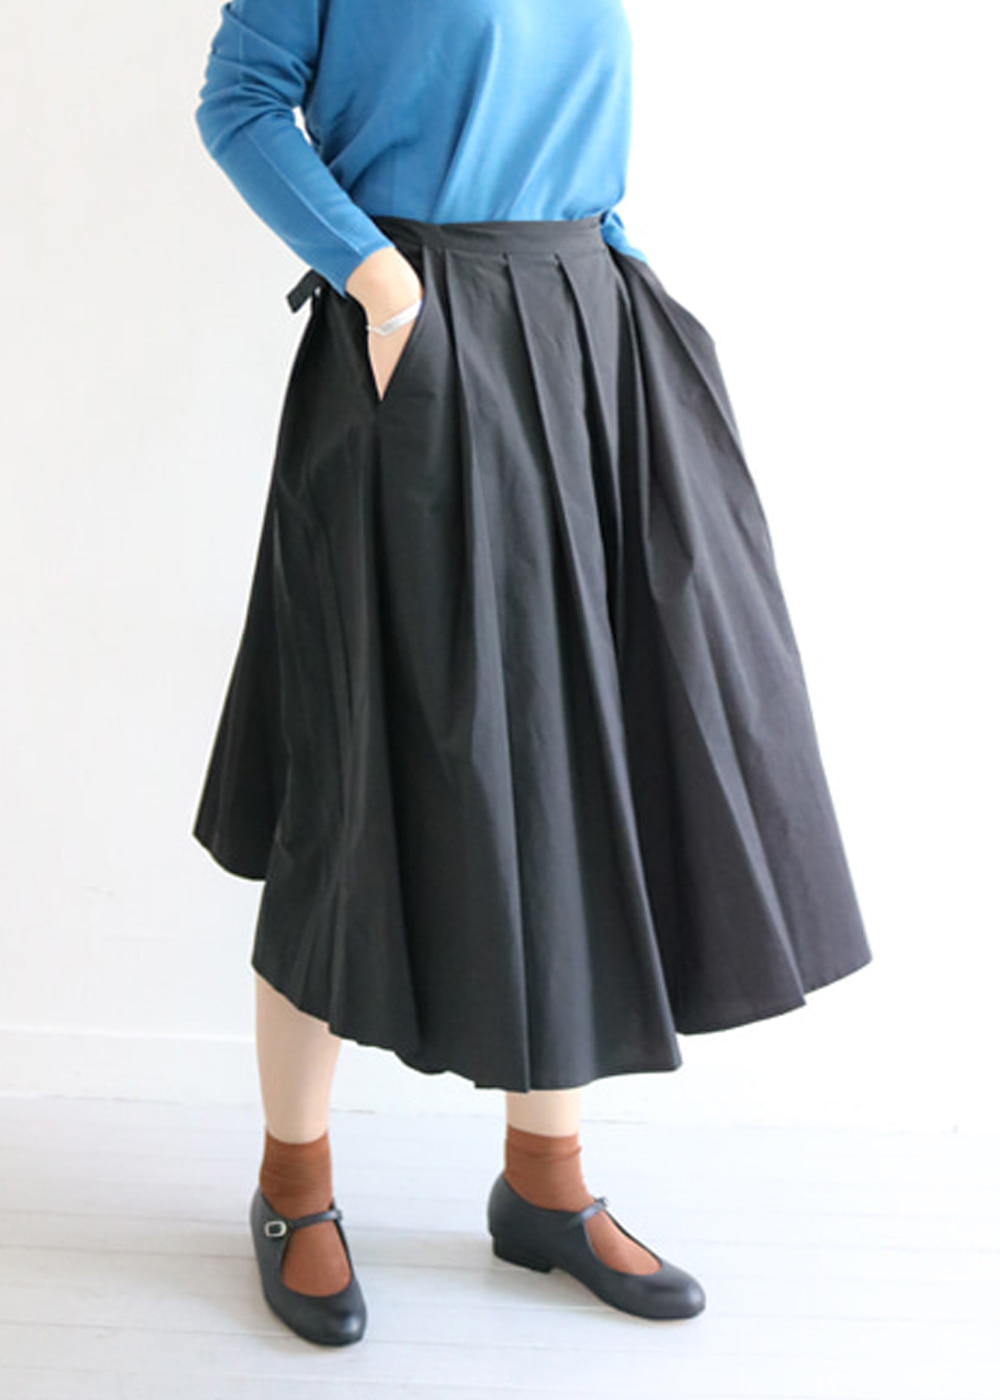 COTTON WRAP SKIRT - nerro